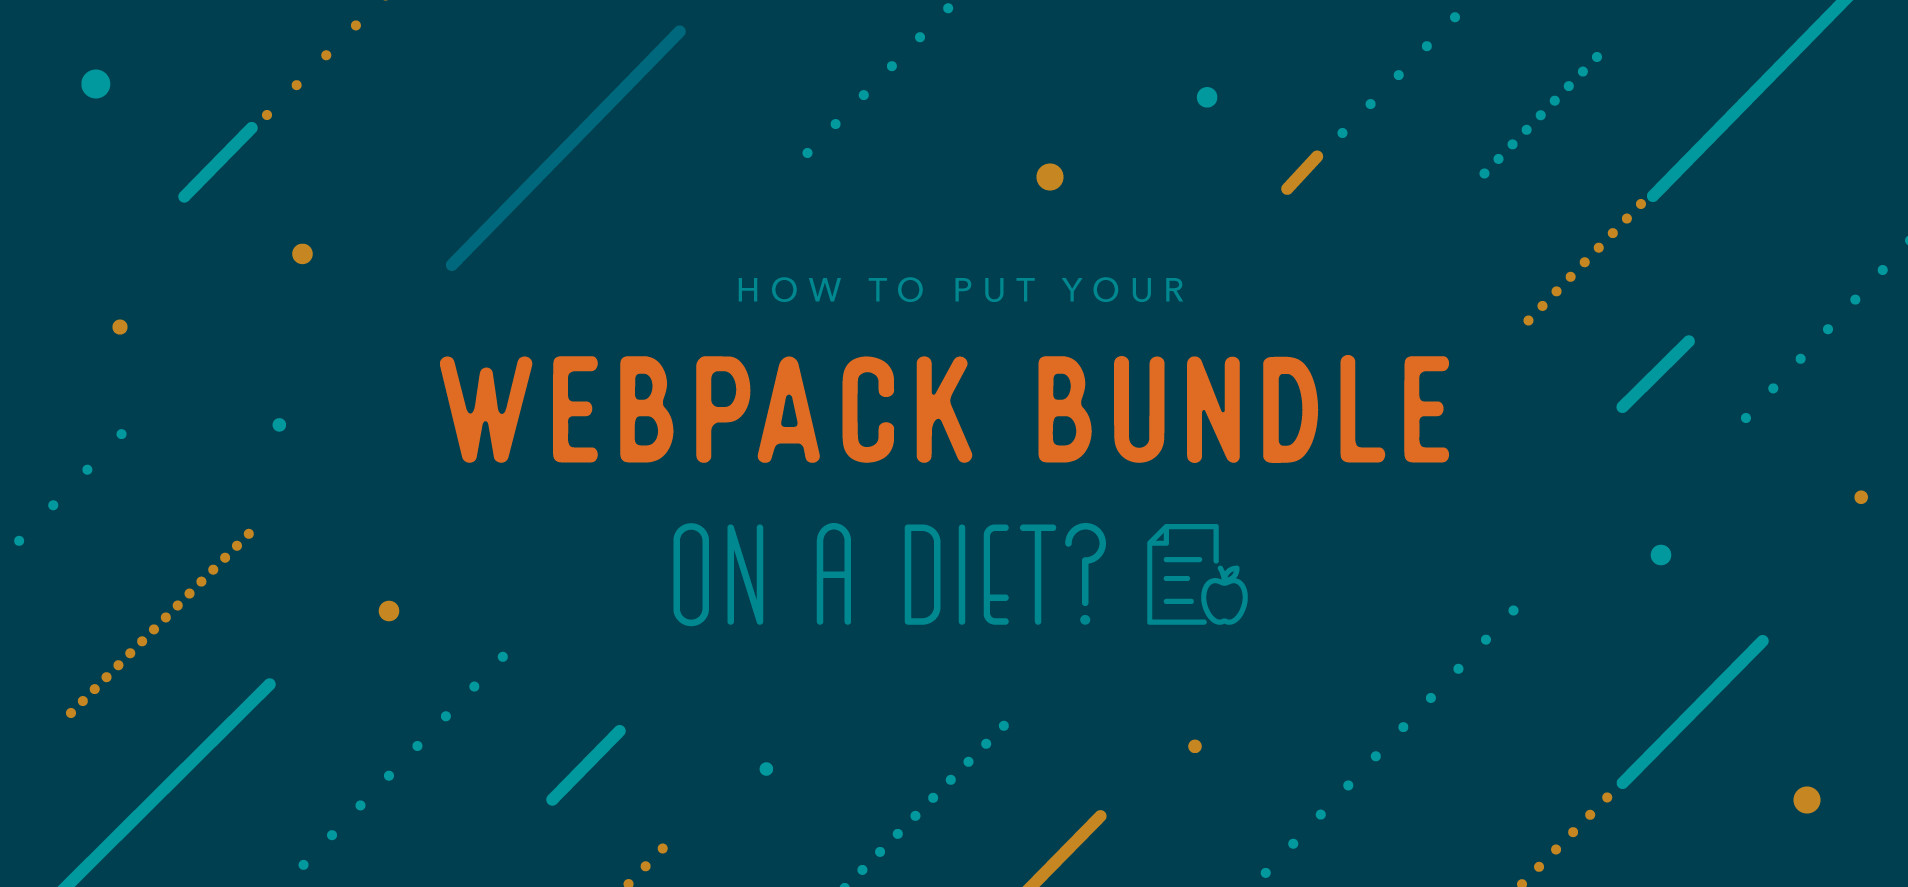 Put Your Webpack Bundle On A Diet - Part 1 | Contentful